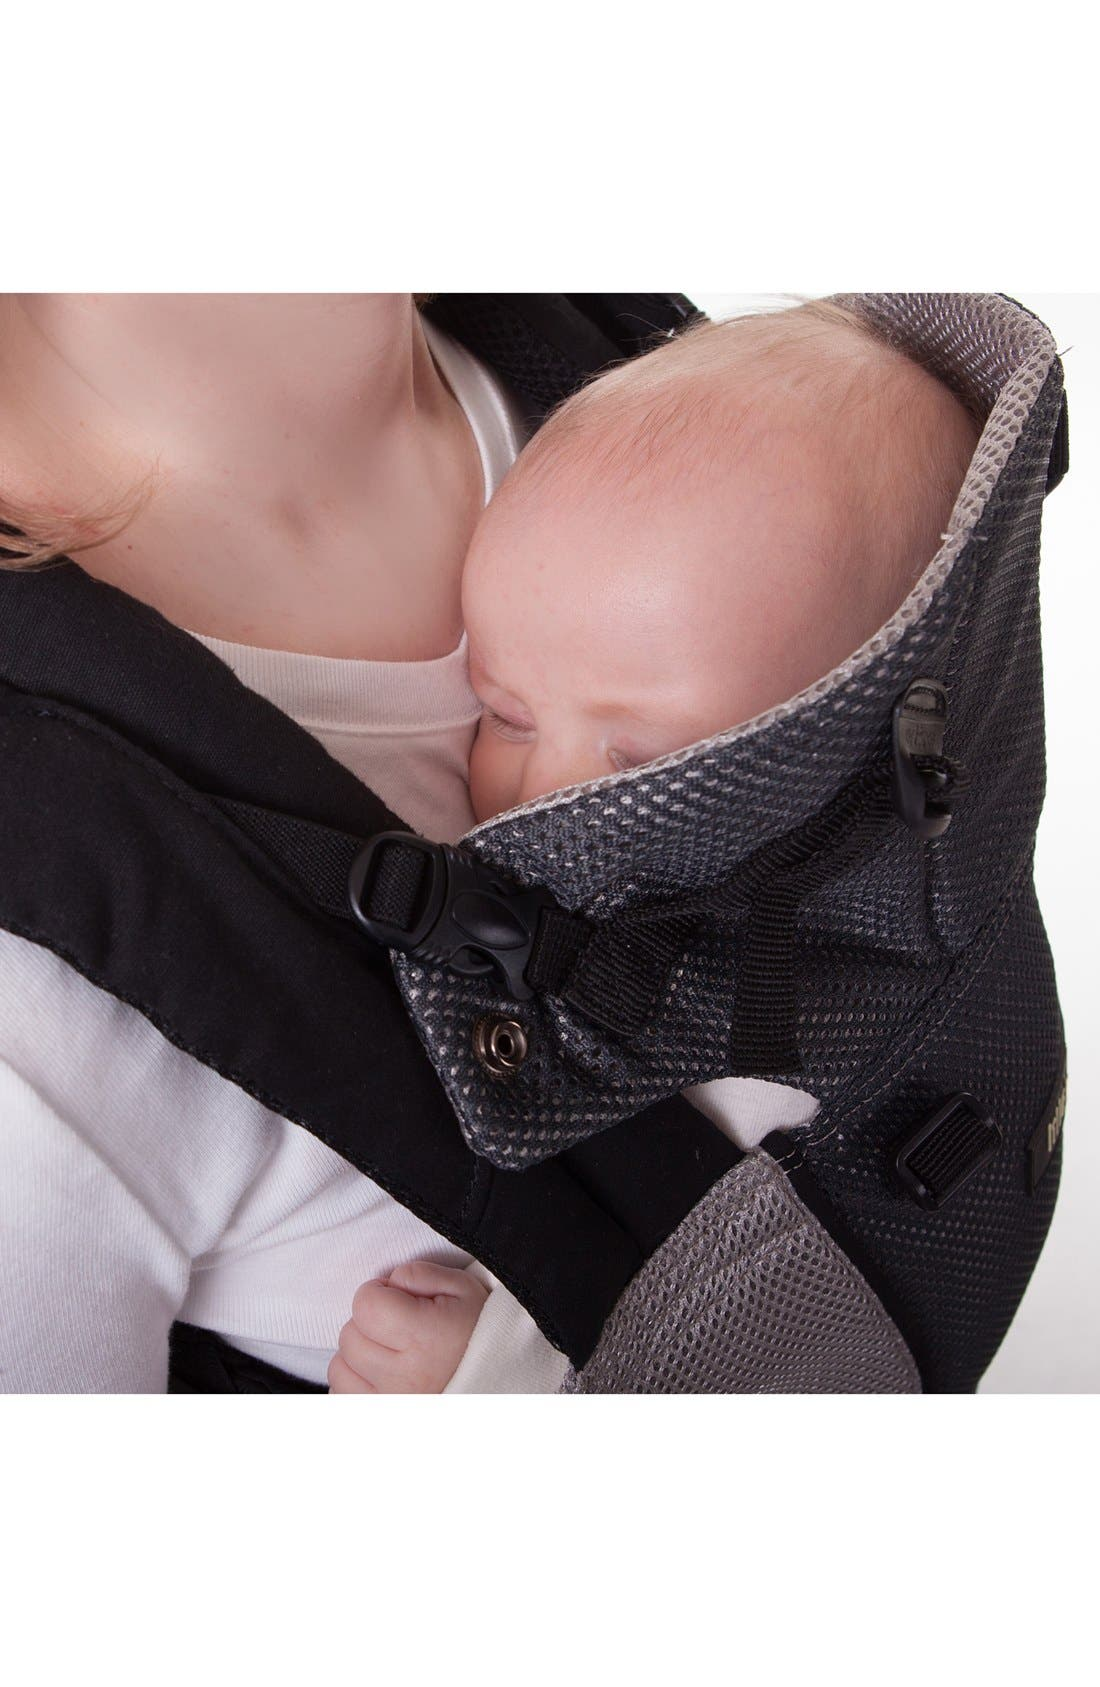 'Airflow' Baby Carrier,                             Alternate thumbnail 4, color,                             Grey/ Silver